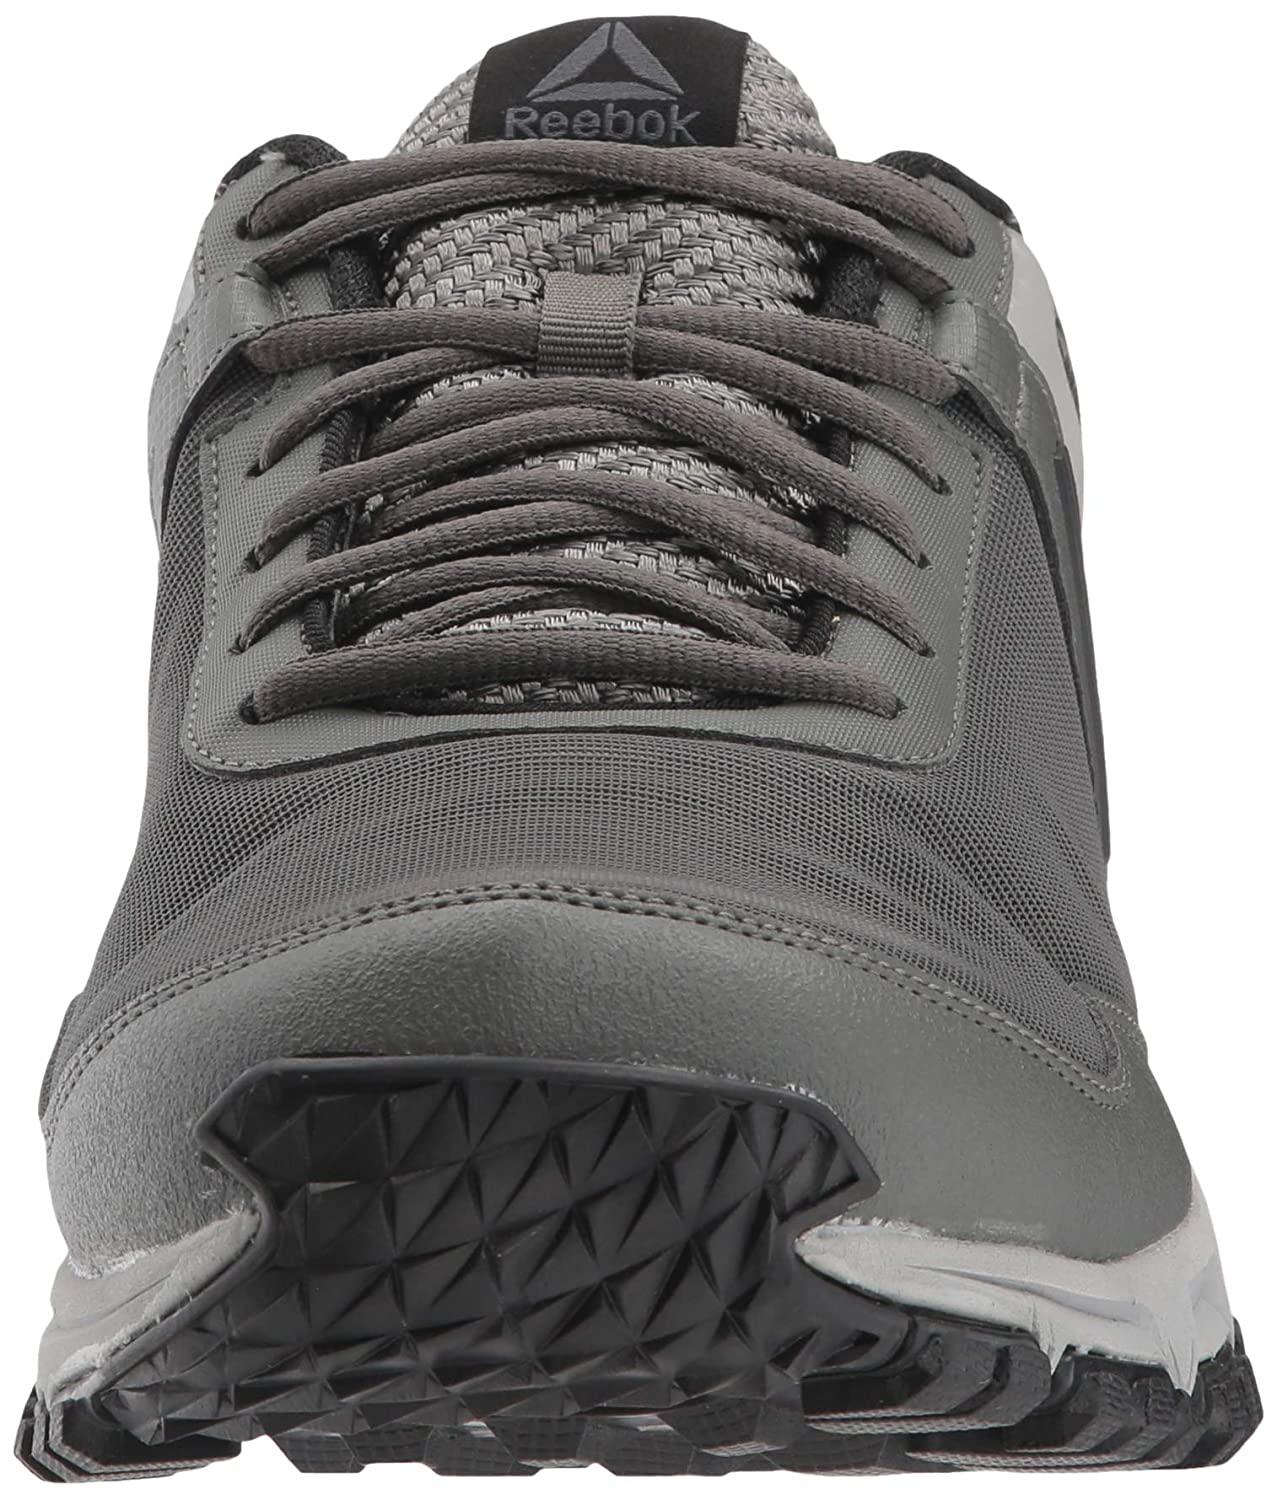 Reebok Mens Ridgerider Trail 3.0 Walking Shoe Reebok Men/'s Ridgerider Trail 3.0 Walking Shoe